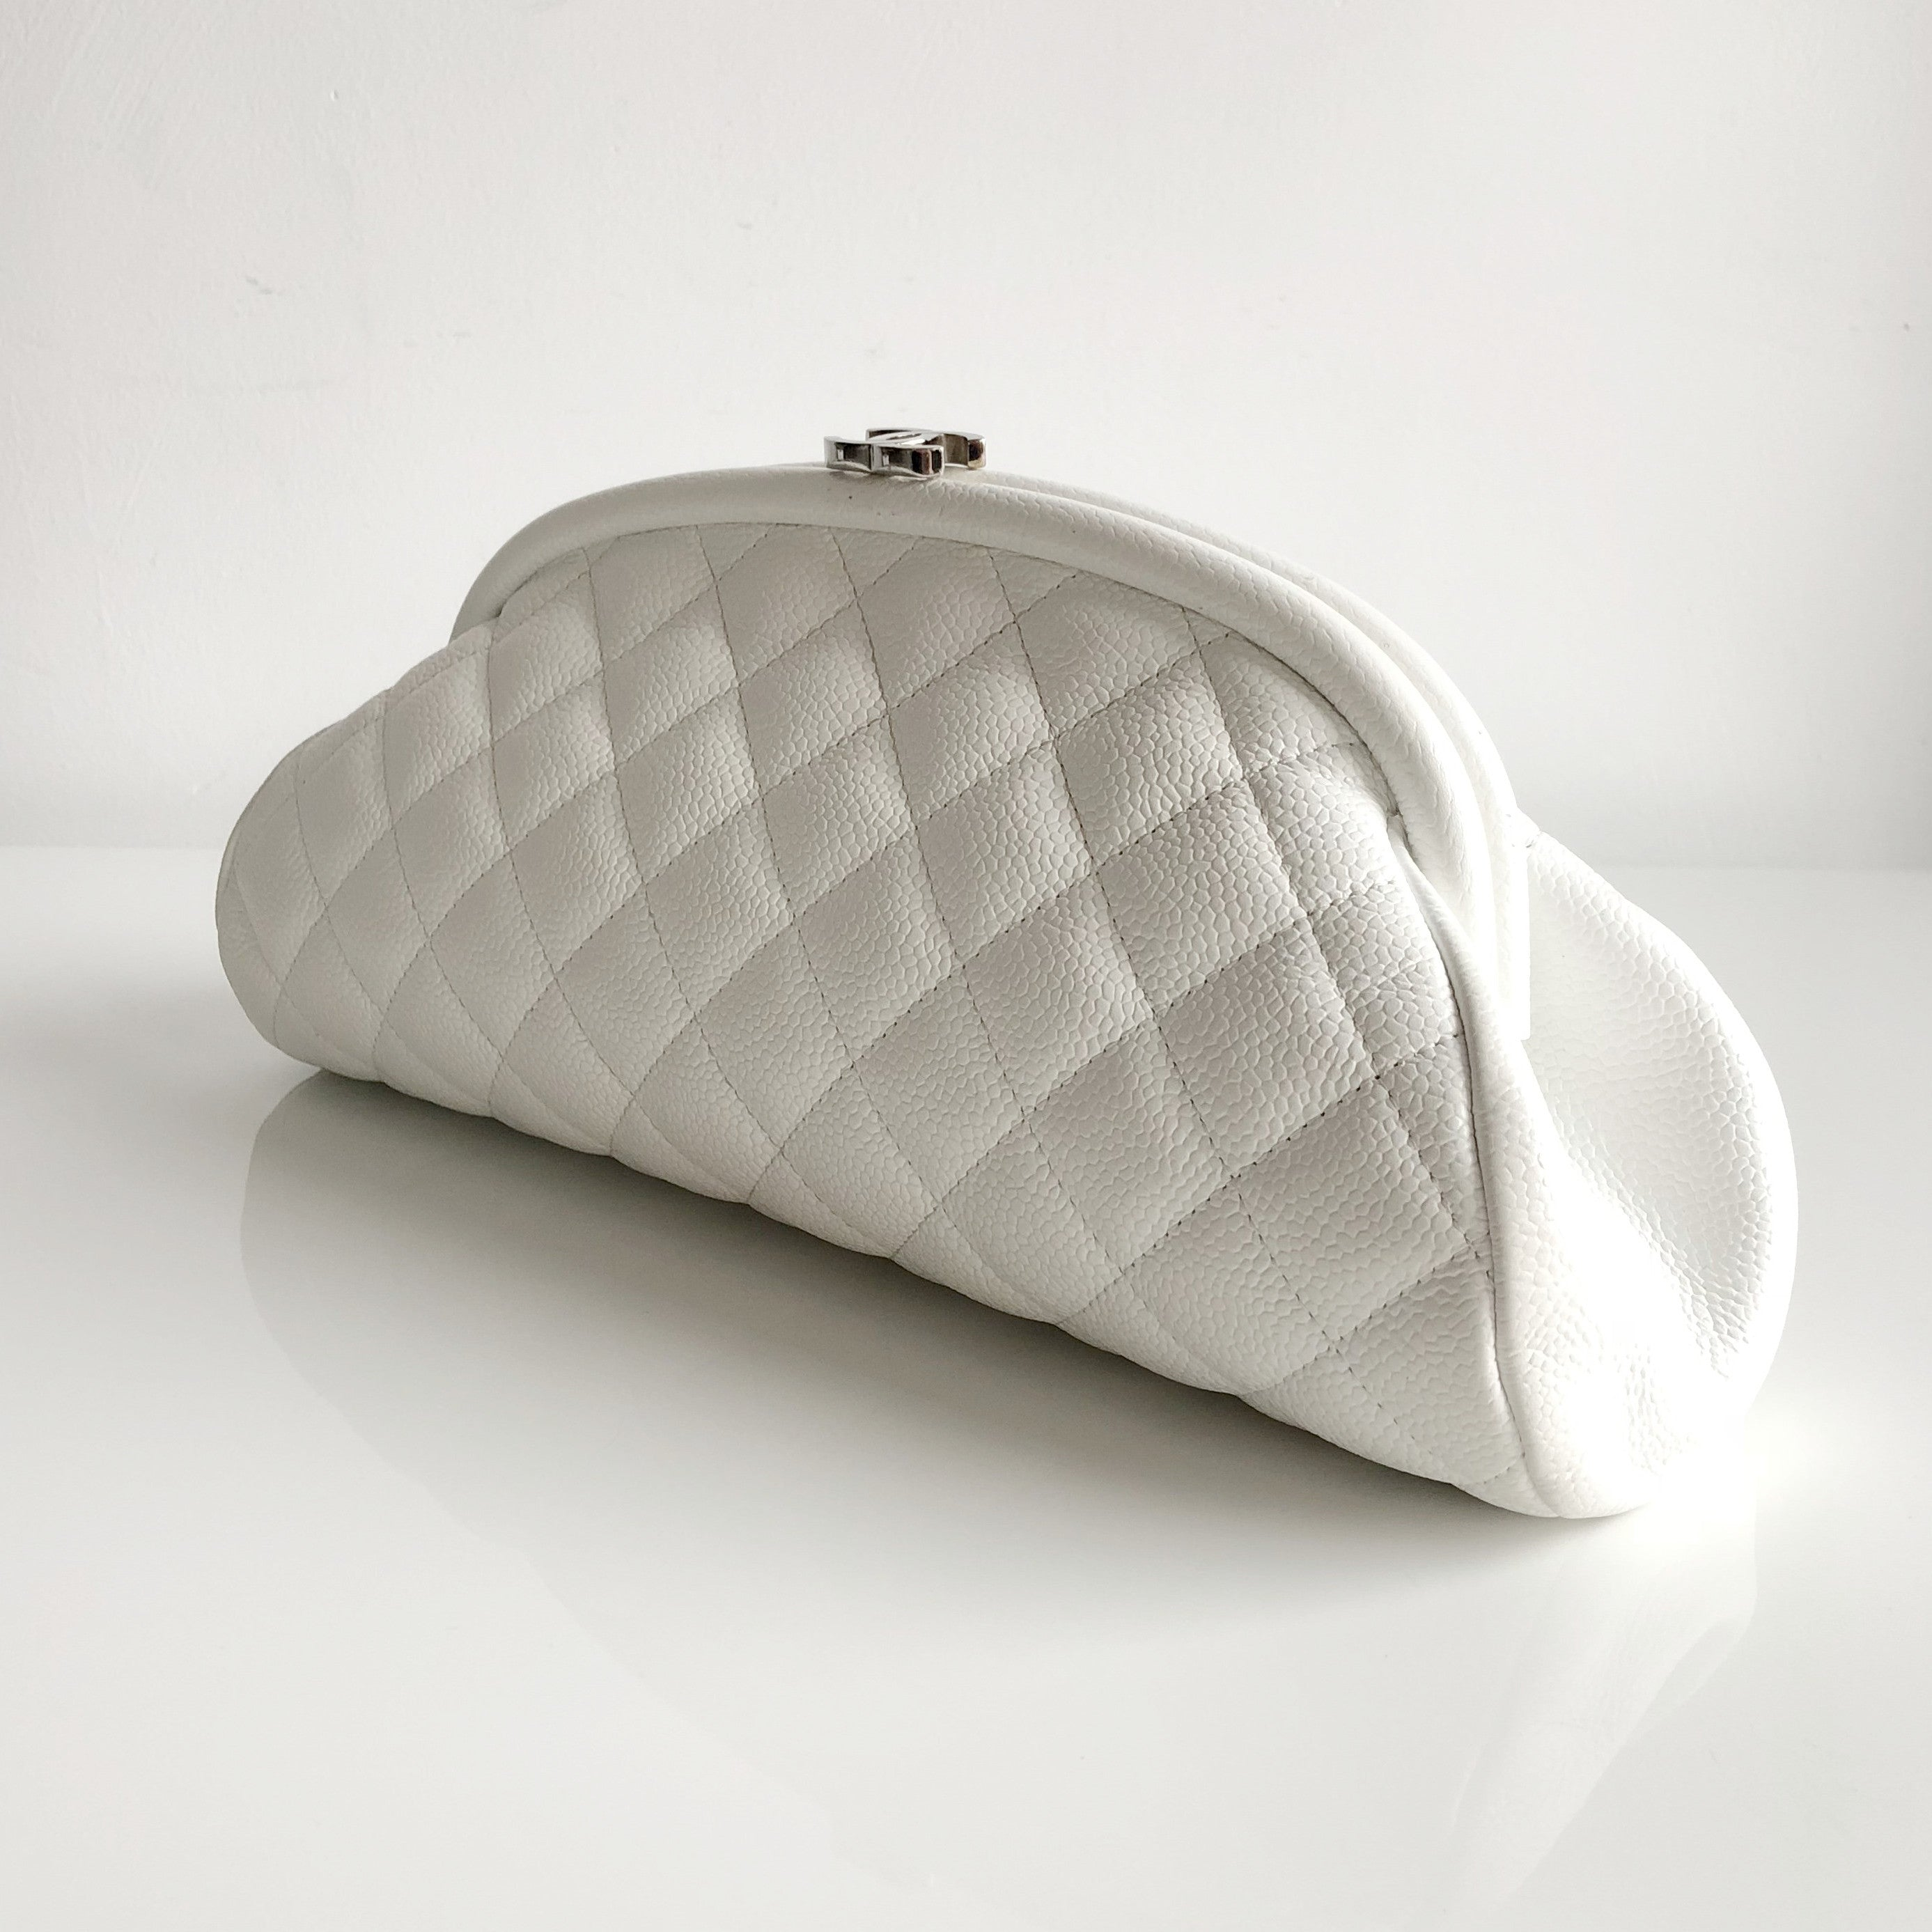 Authentic CHANEL Quilted Timless White Caviar Clutch.